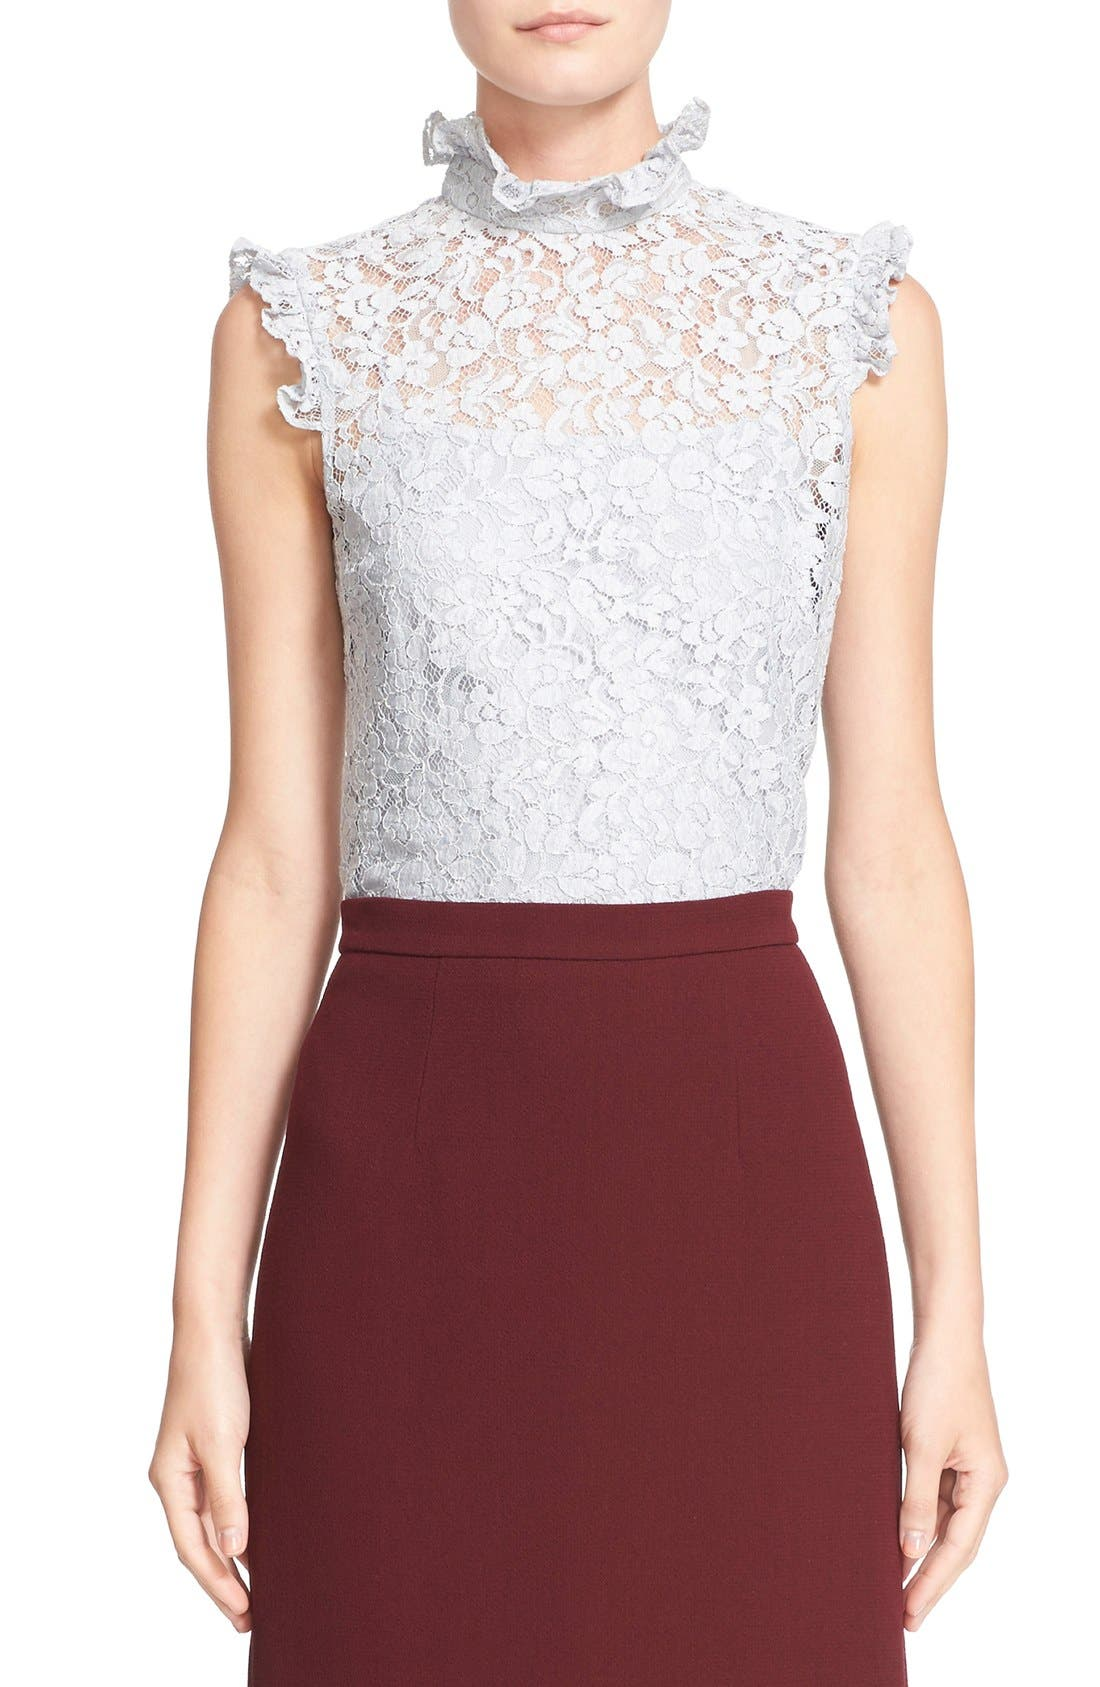 'Mika' Floral Lace High Collar Blouse,                         Main,                         color, 450